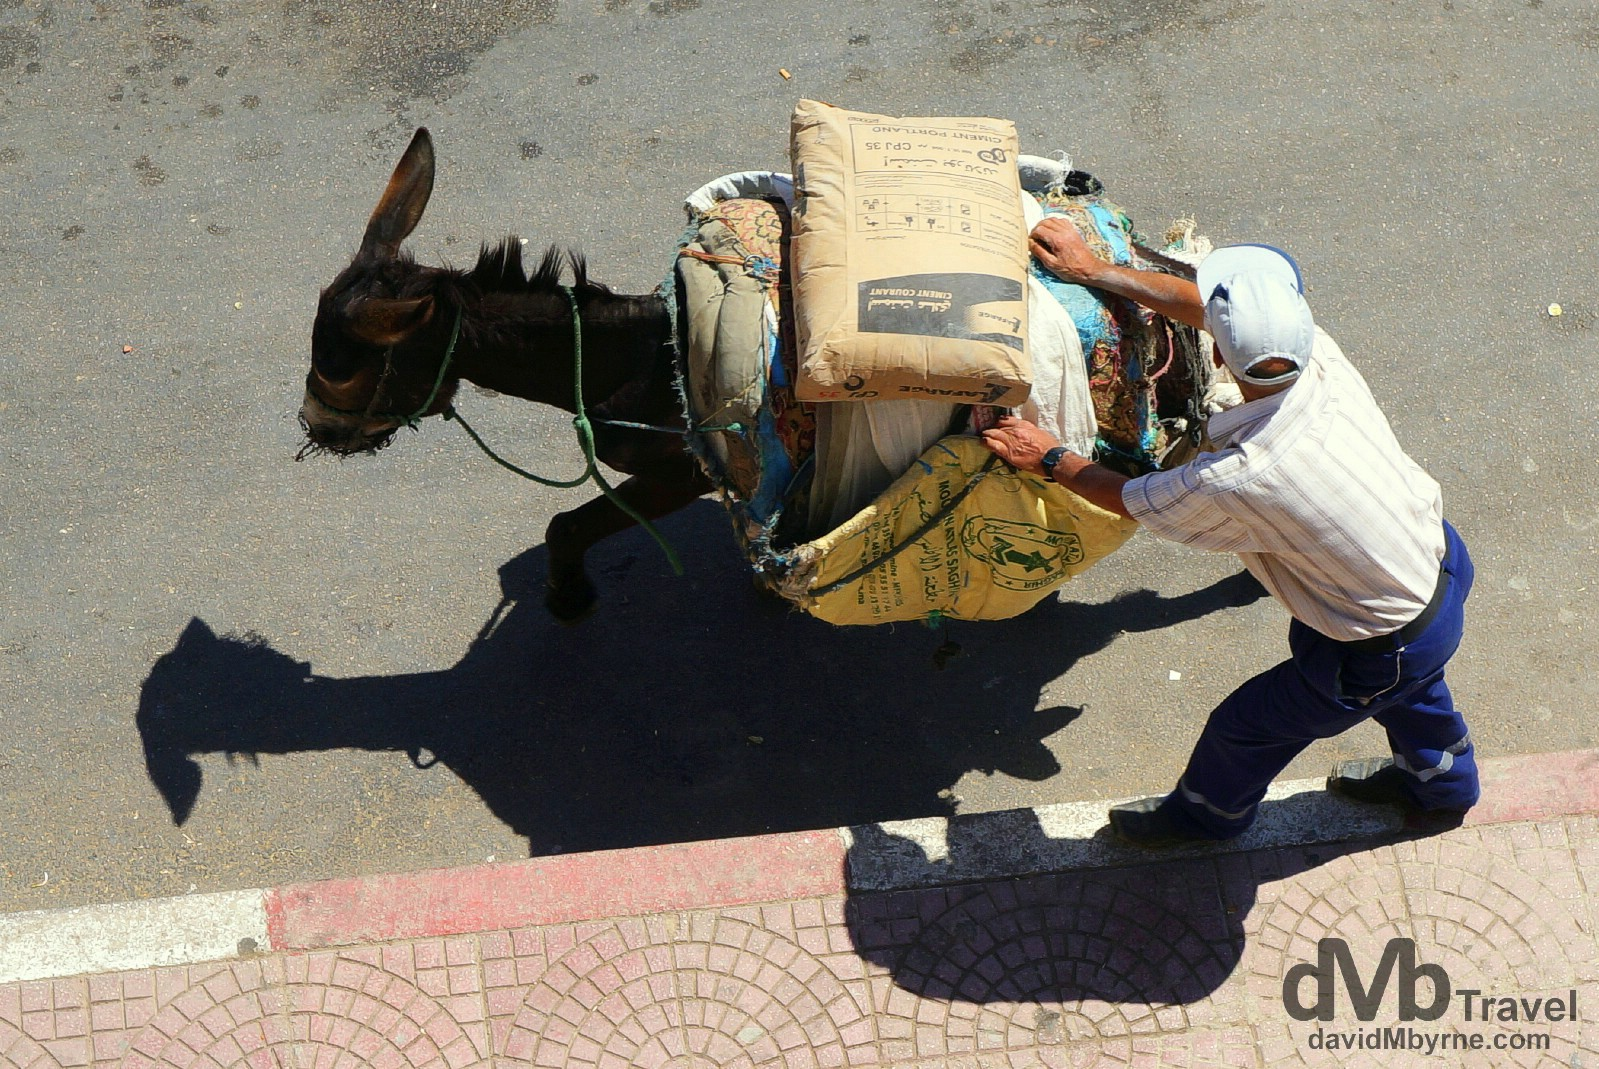 A beast of burden being helped along on the streets of Moulay Idriss, northern Morocco. May 25th, 2014.